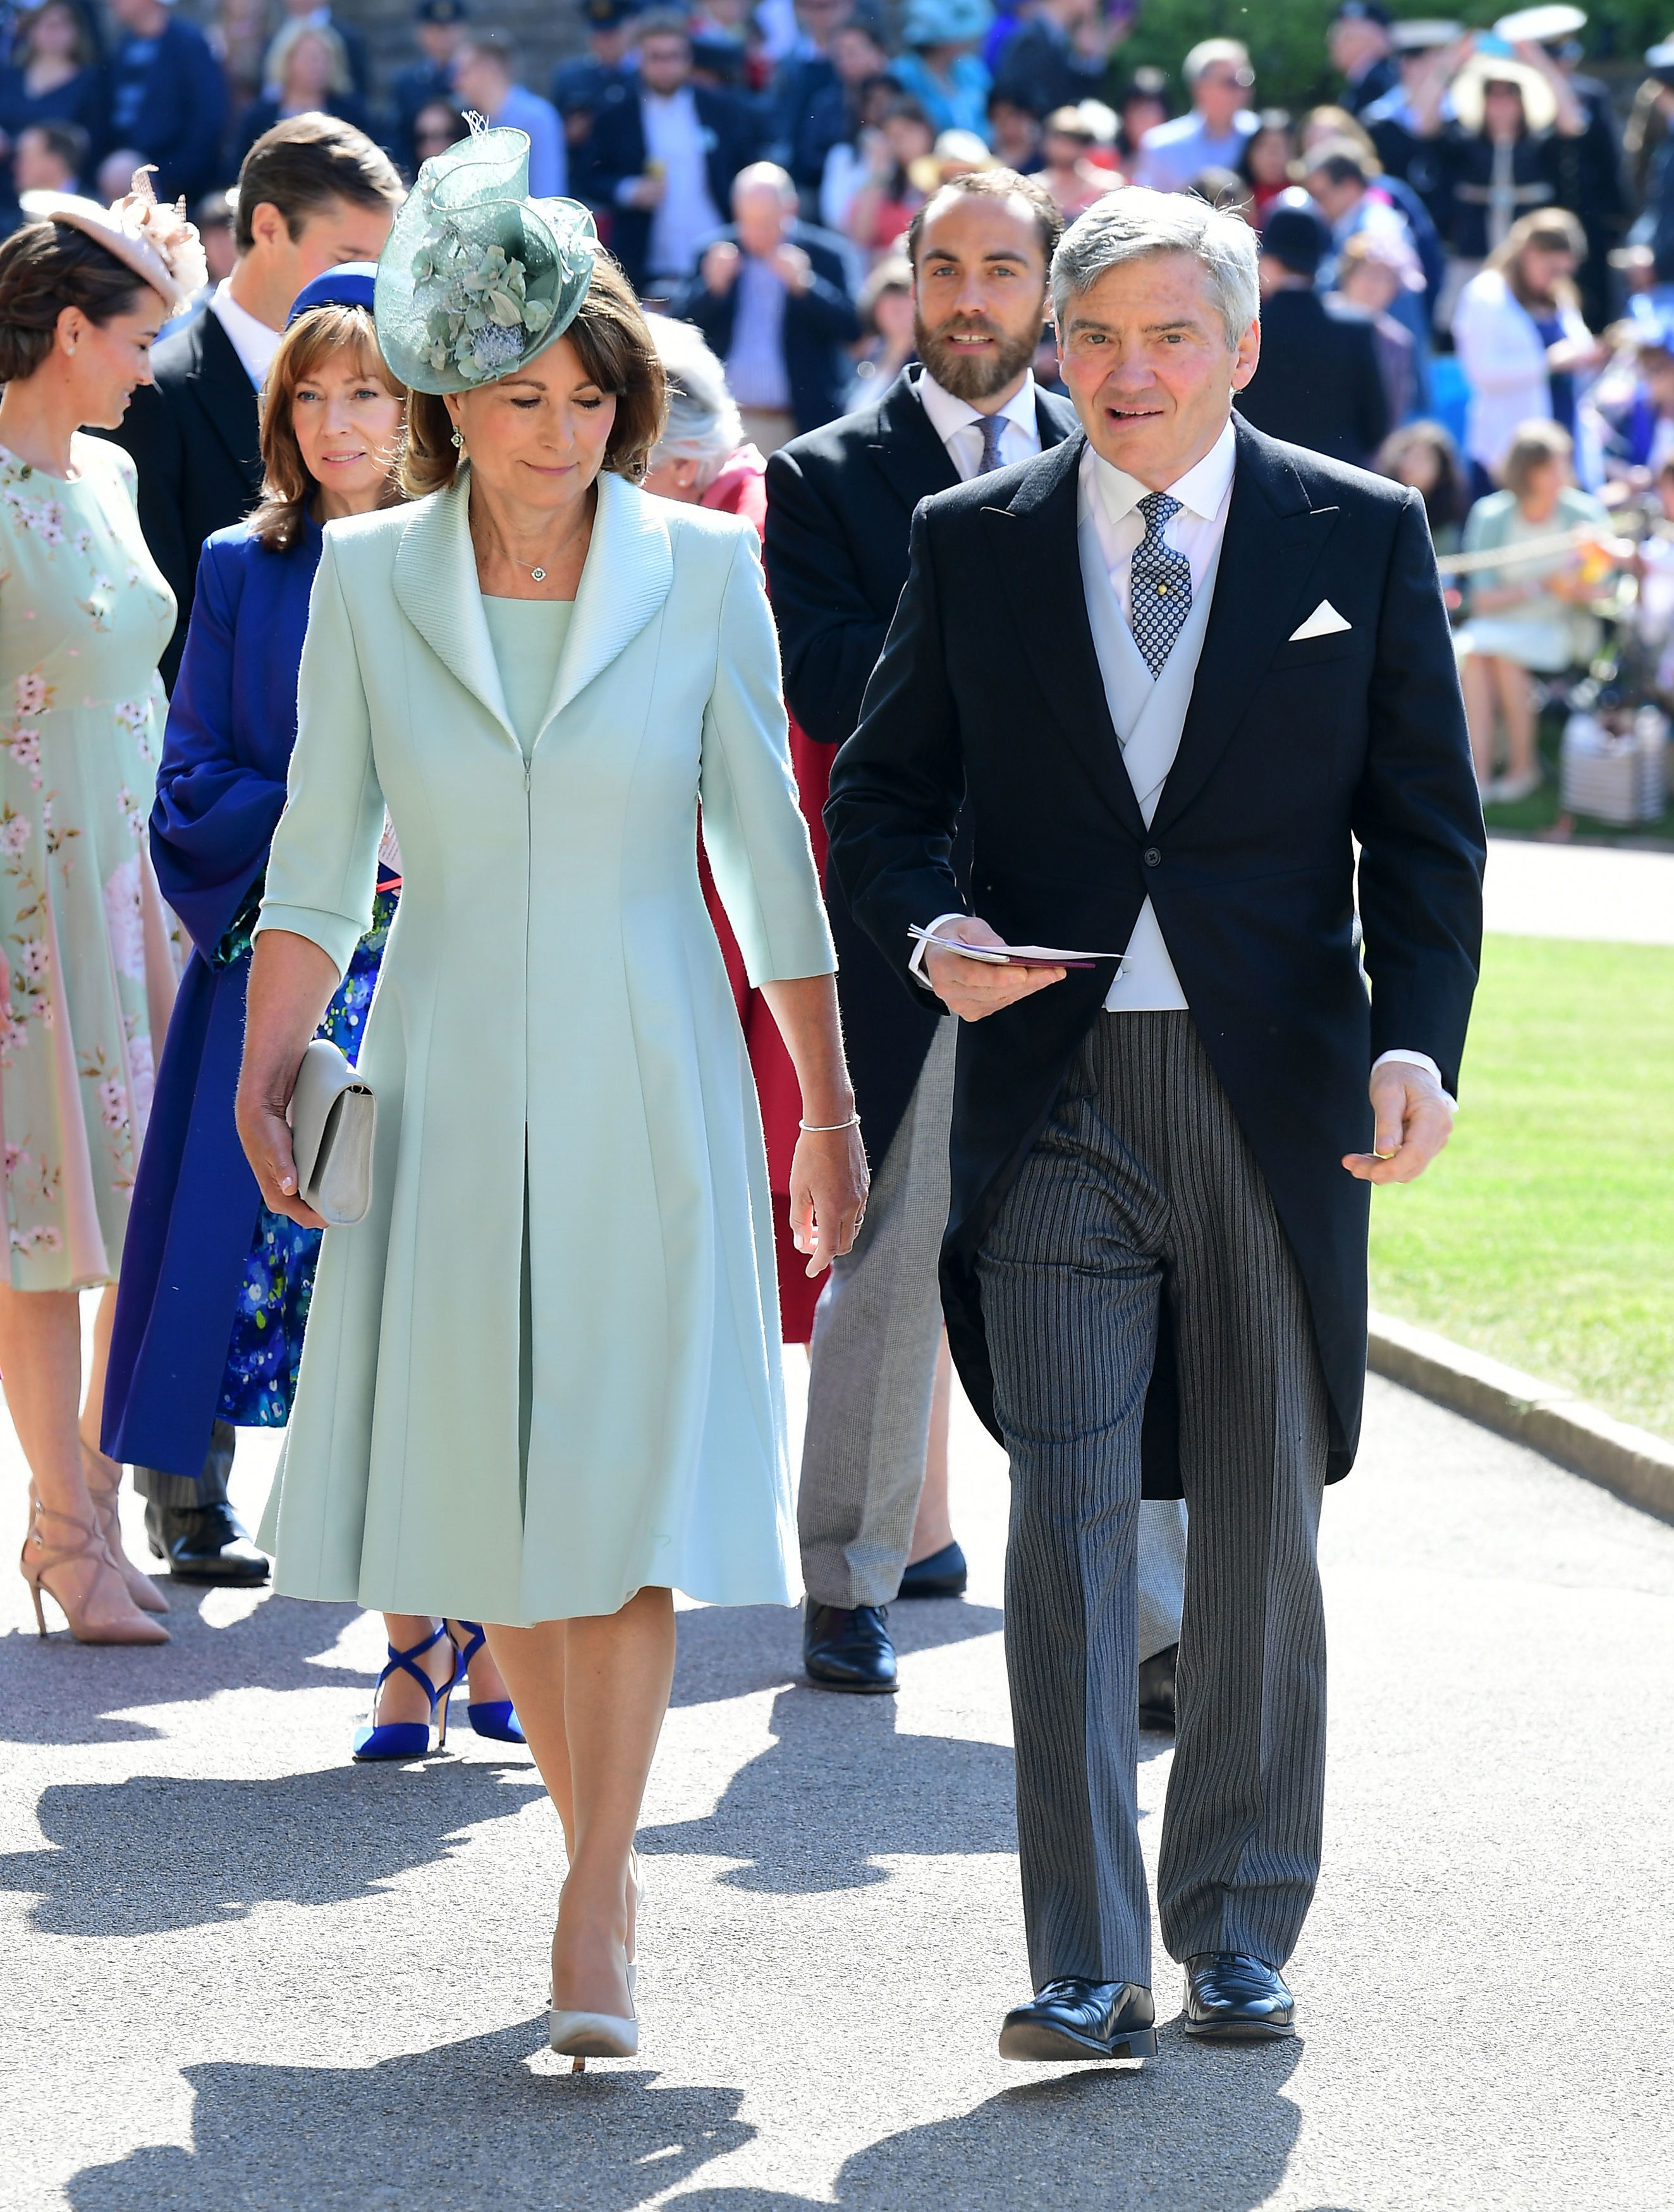 Royal Wedding Guests.From Oprah To James Blunt These Are Prince Harry And Meghan